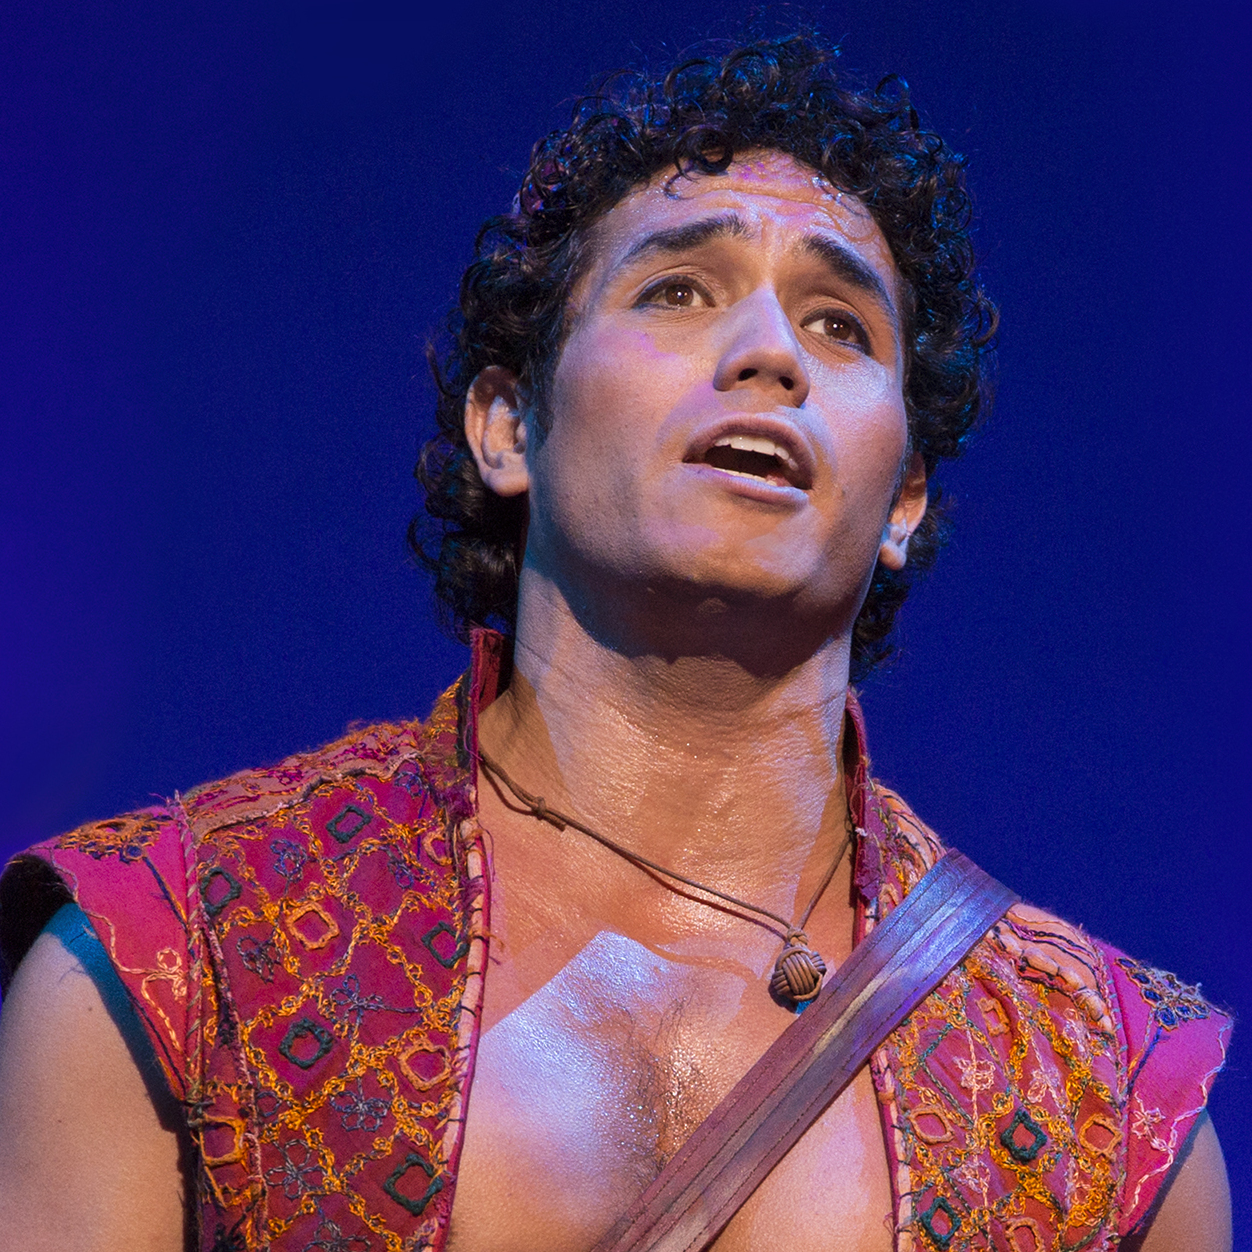 Disney hit it big on Broadway with The Lion King, but The Little Mermaid and Tarzan didn't fare quite so well. Aladdin --�� the Arabian Nights story of a young street urchin, a princess and a big blue genie -- is Disney's latest adaptation attempt.